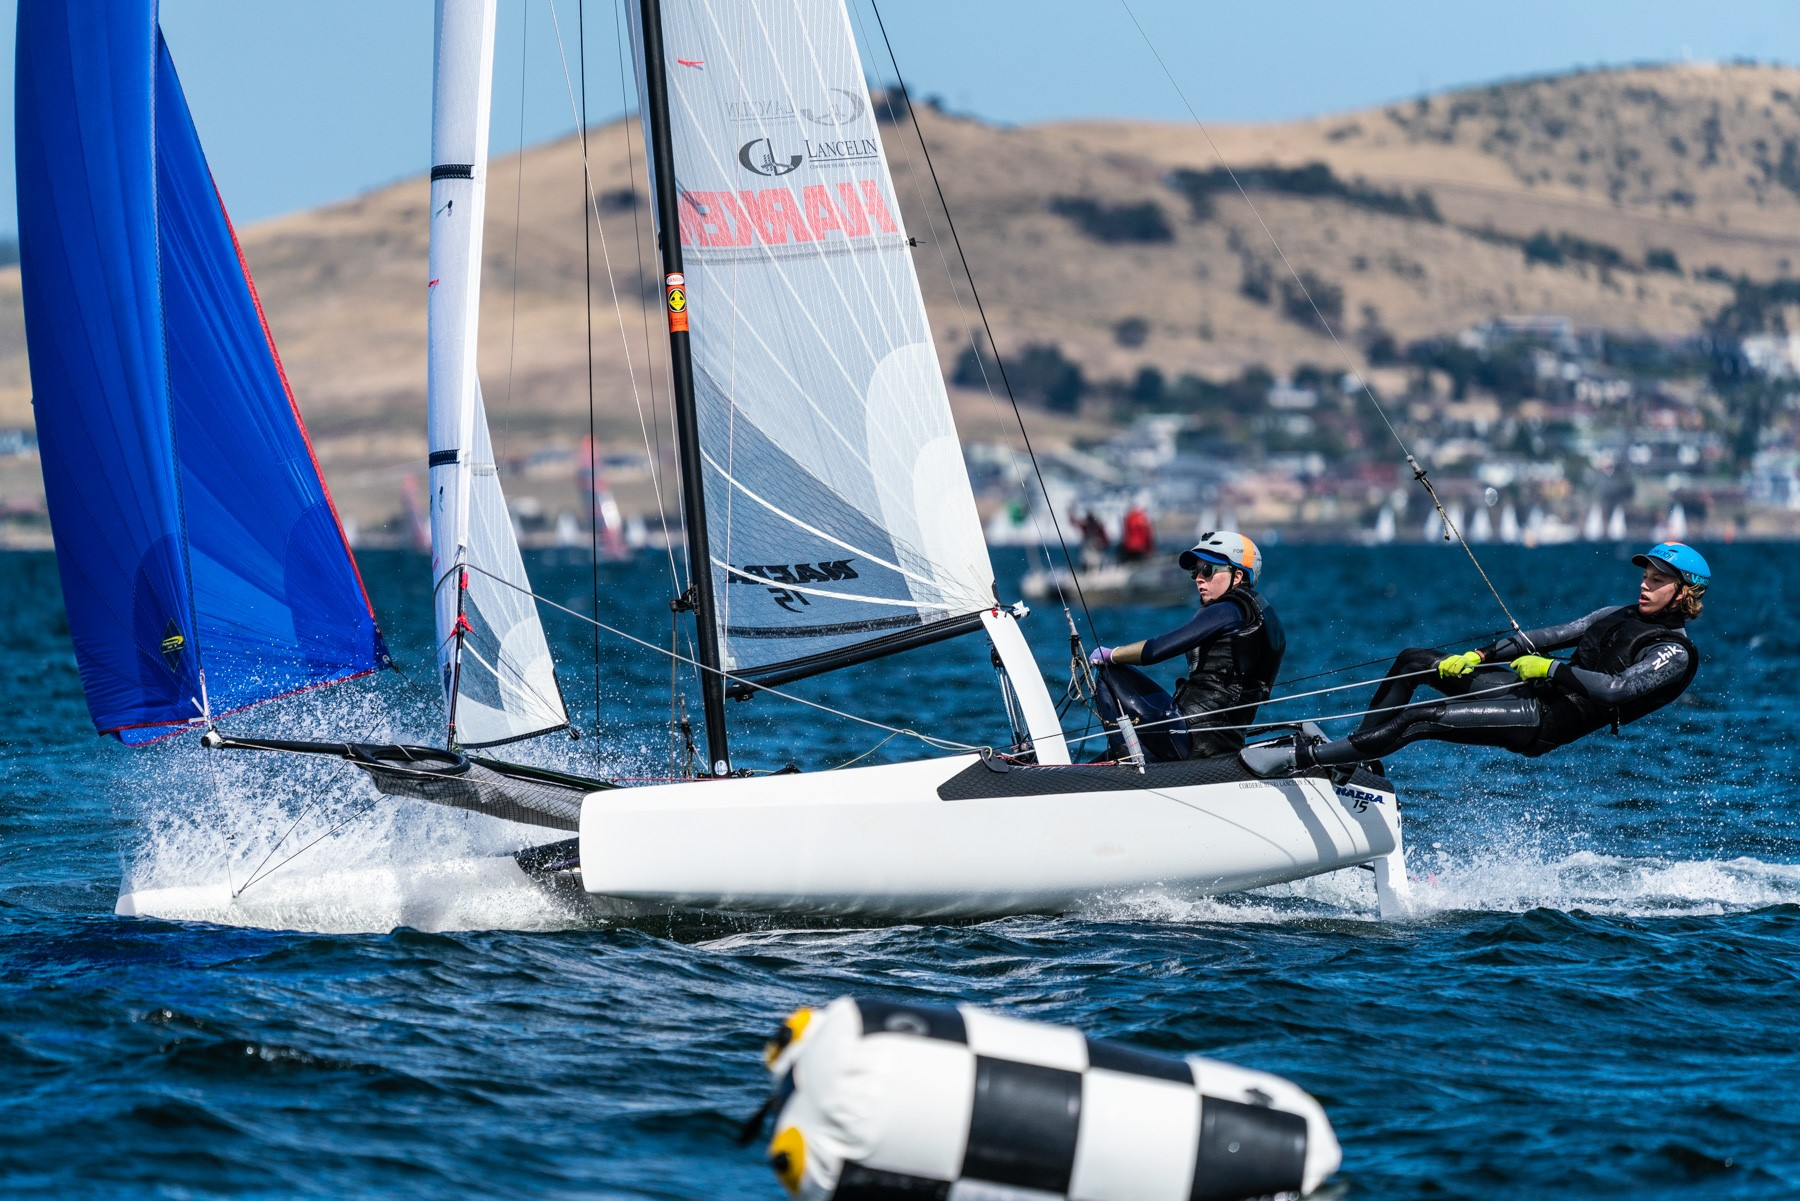 Ashleigh Swadlings and Nathan Bryant show Nacra style - Beau Outteridge pic